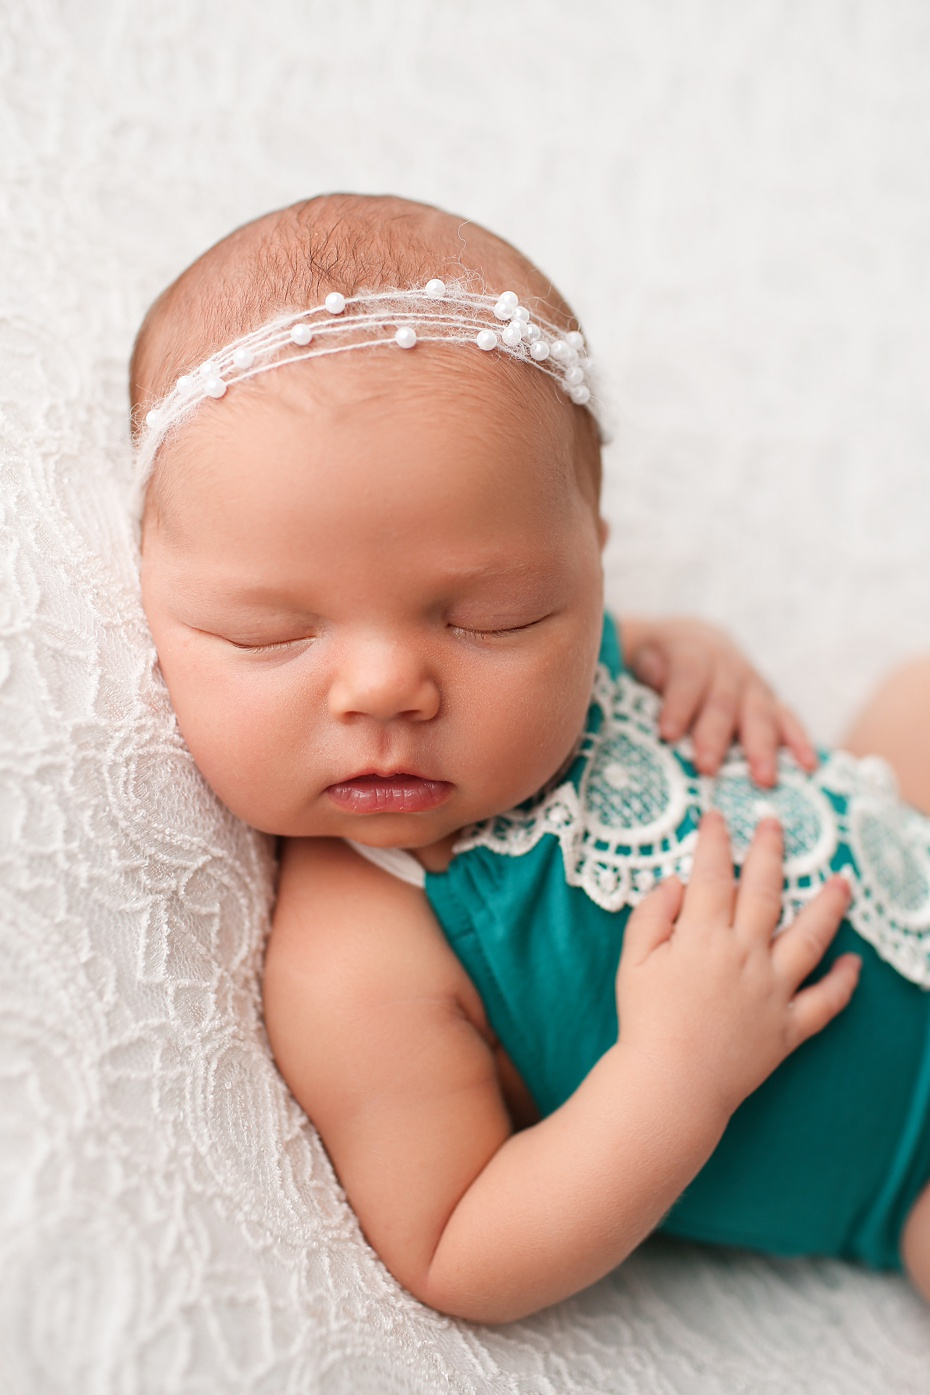 truly_you_photography_blog_baby_newborn_pink_teal-29_web.jpg